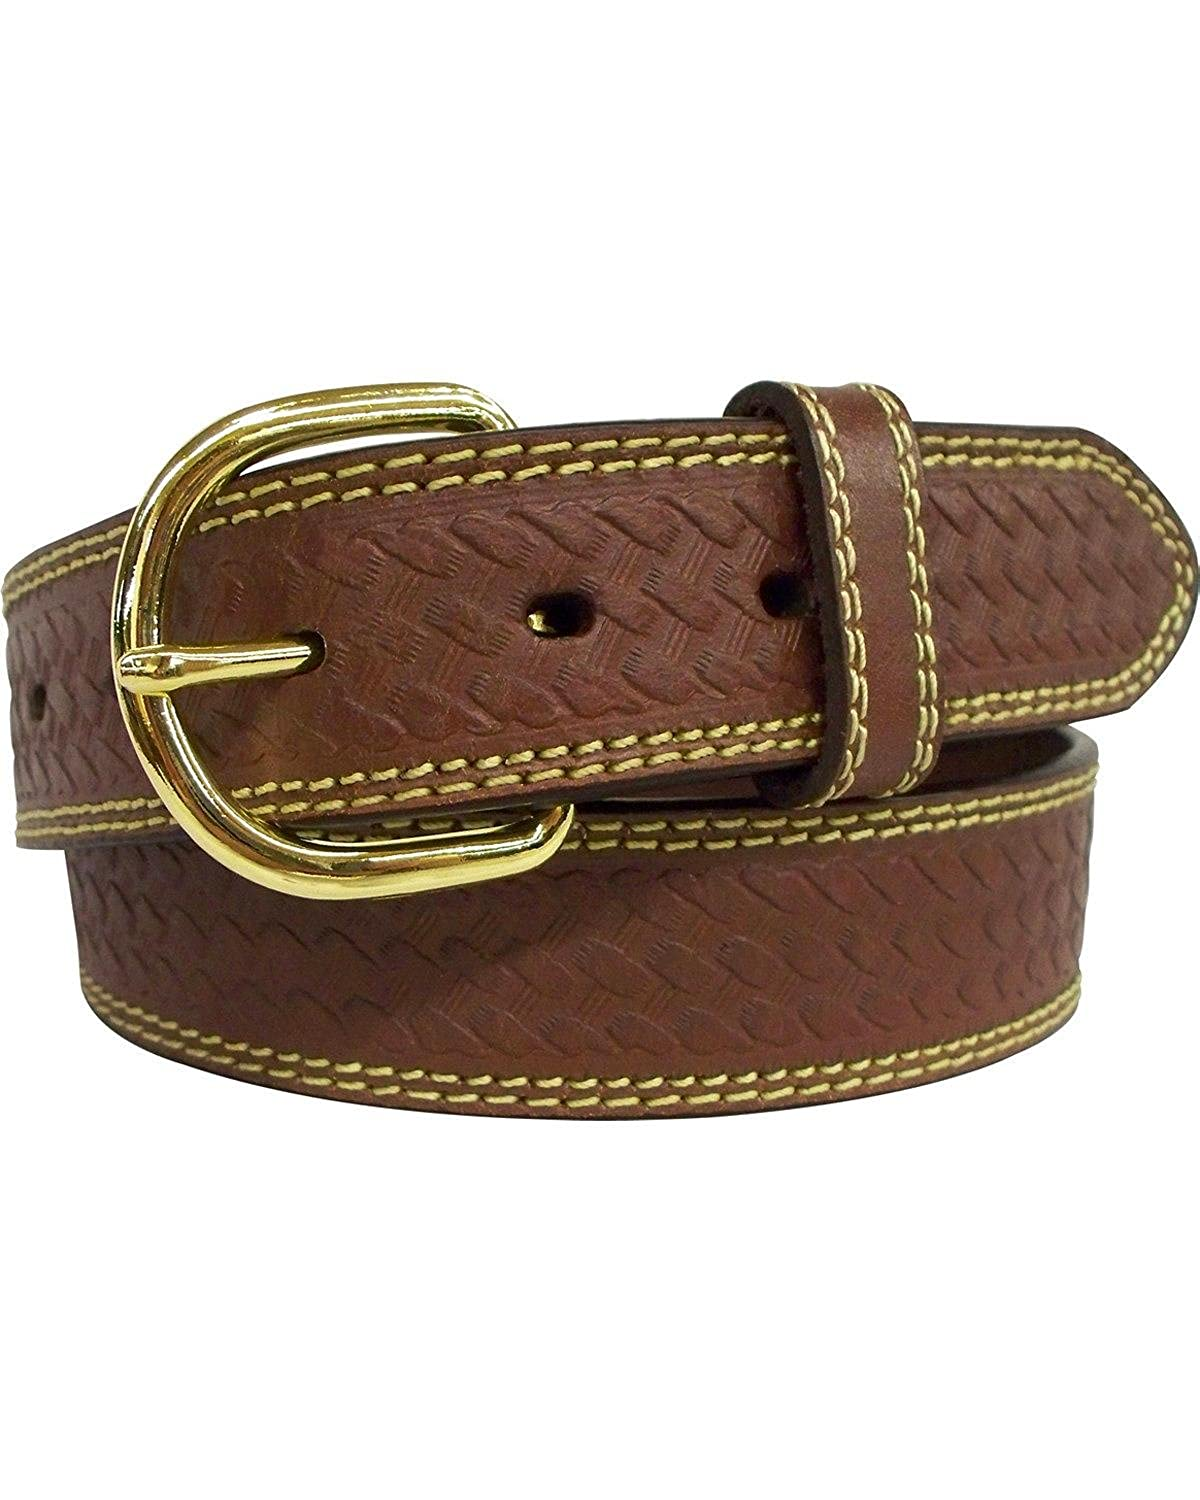 G-Bar-D Mens G-D Top Grain Leather Belt With Embossed Weave Design 5221500-200